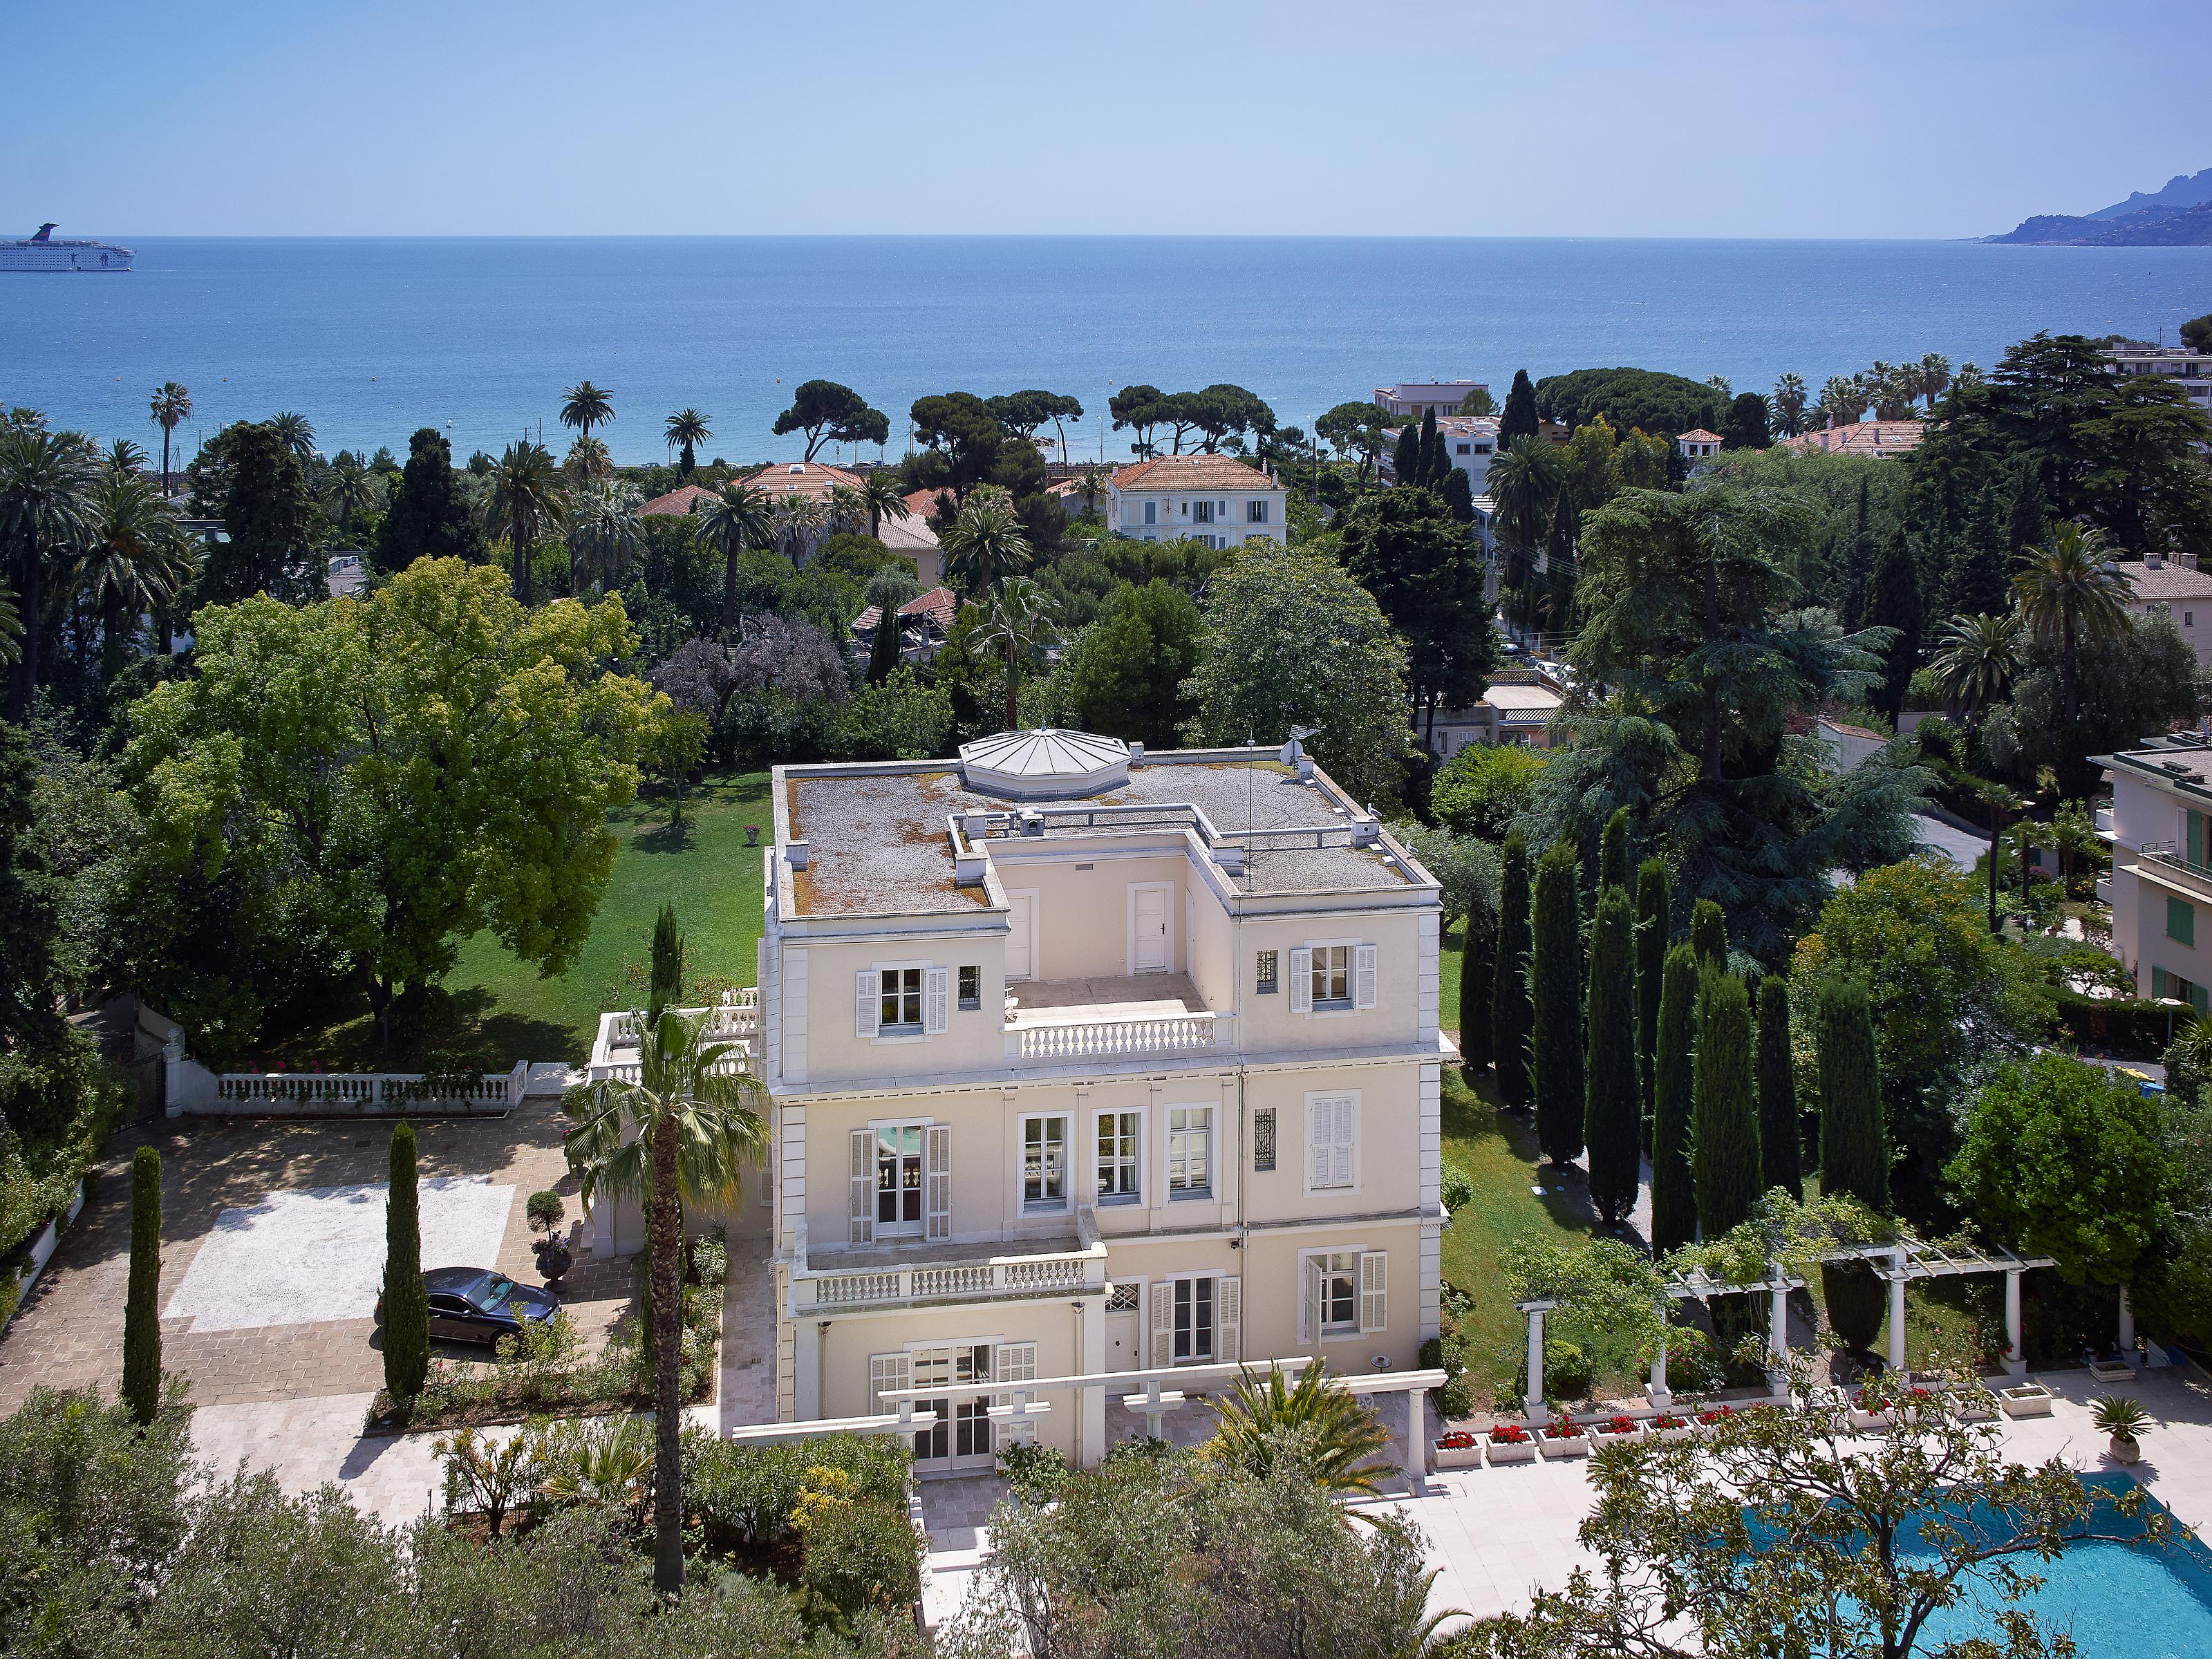 Single Family Home for Sale at Villa Belle Epoque Cannes Cannes, Provence-Alpes-Cote D'Azur 06400 France